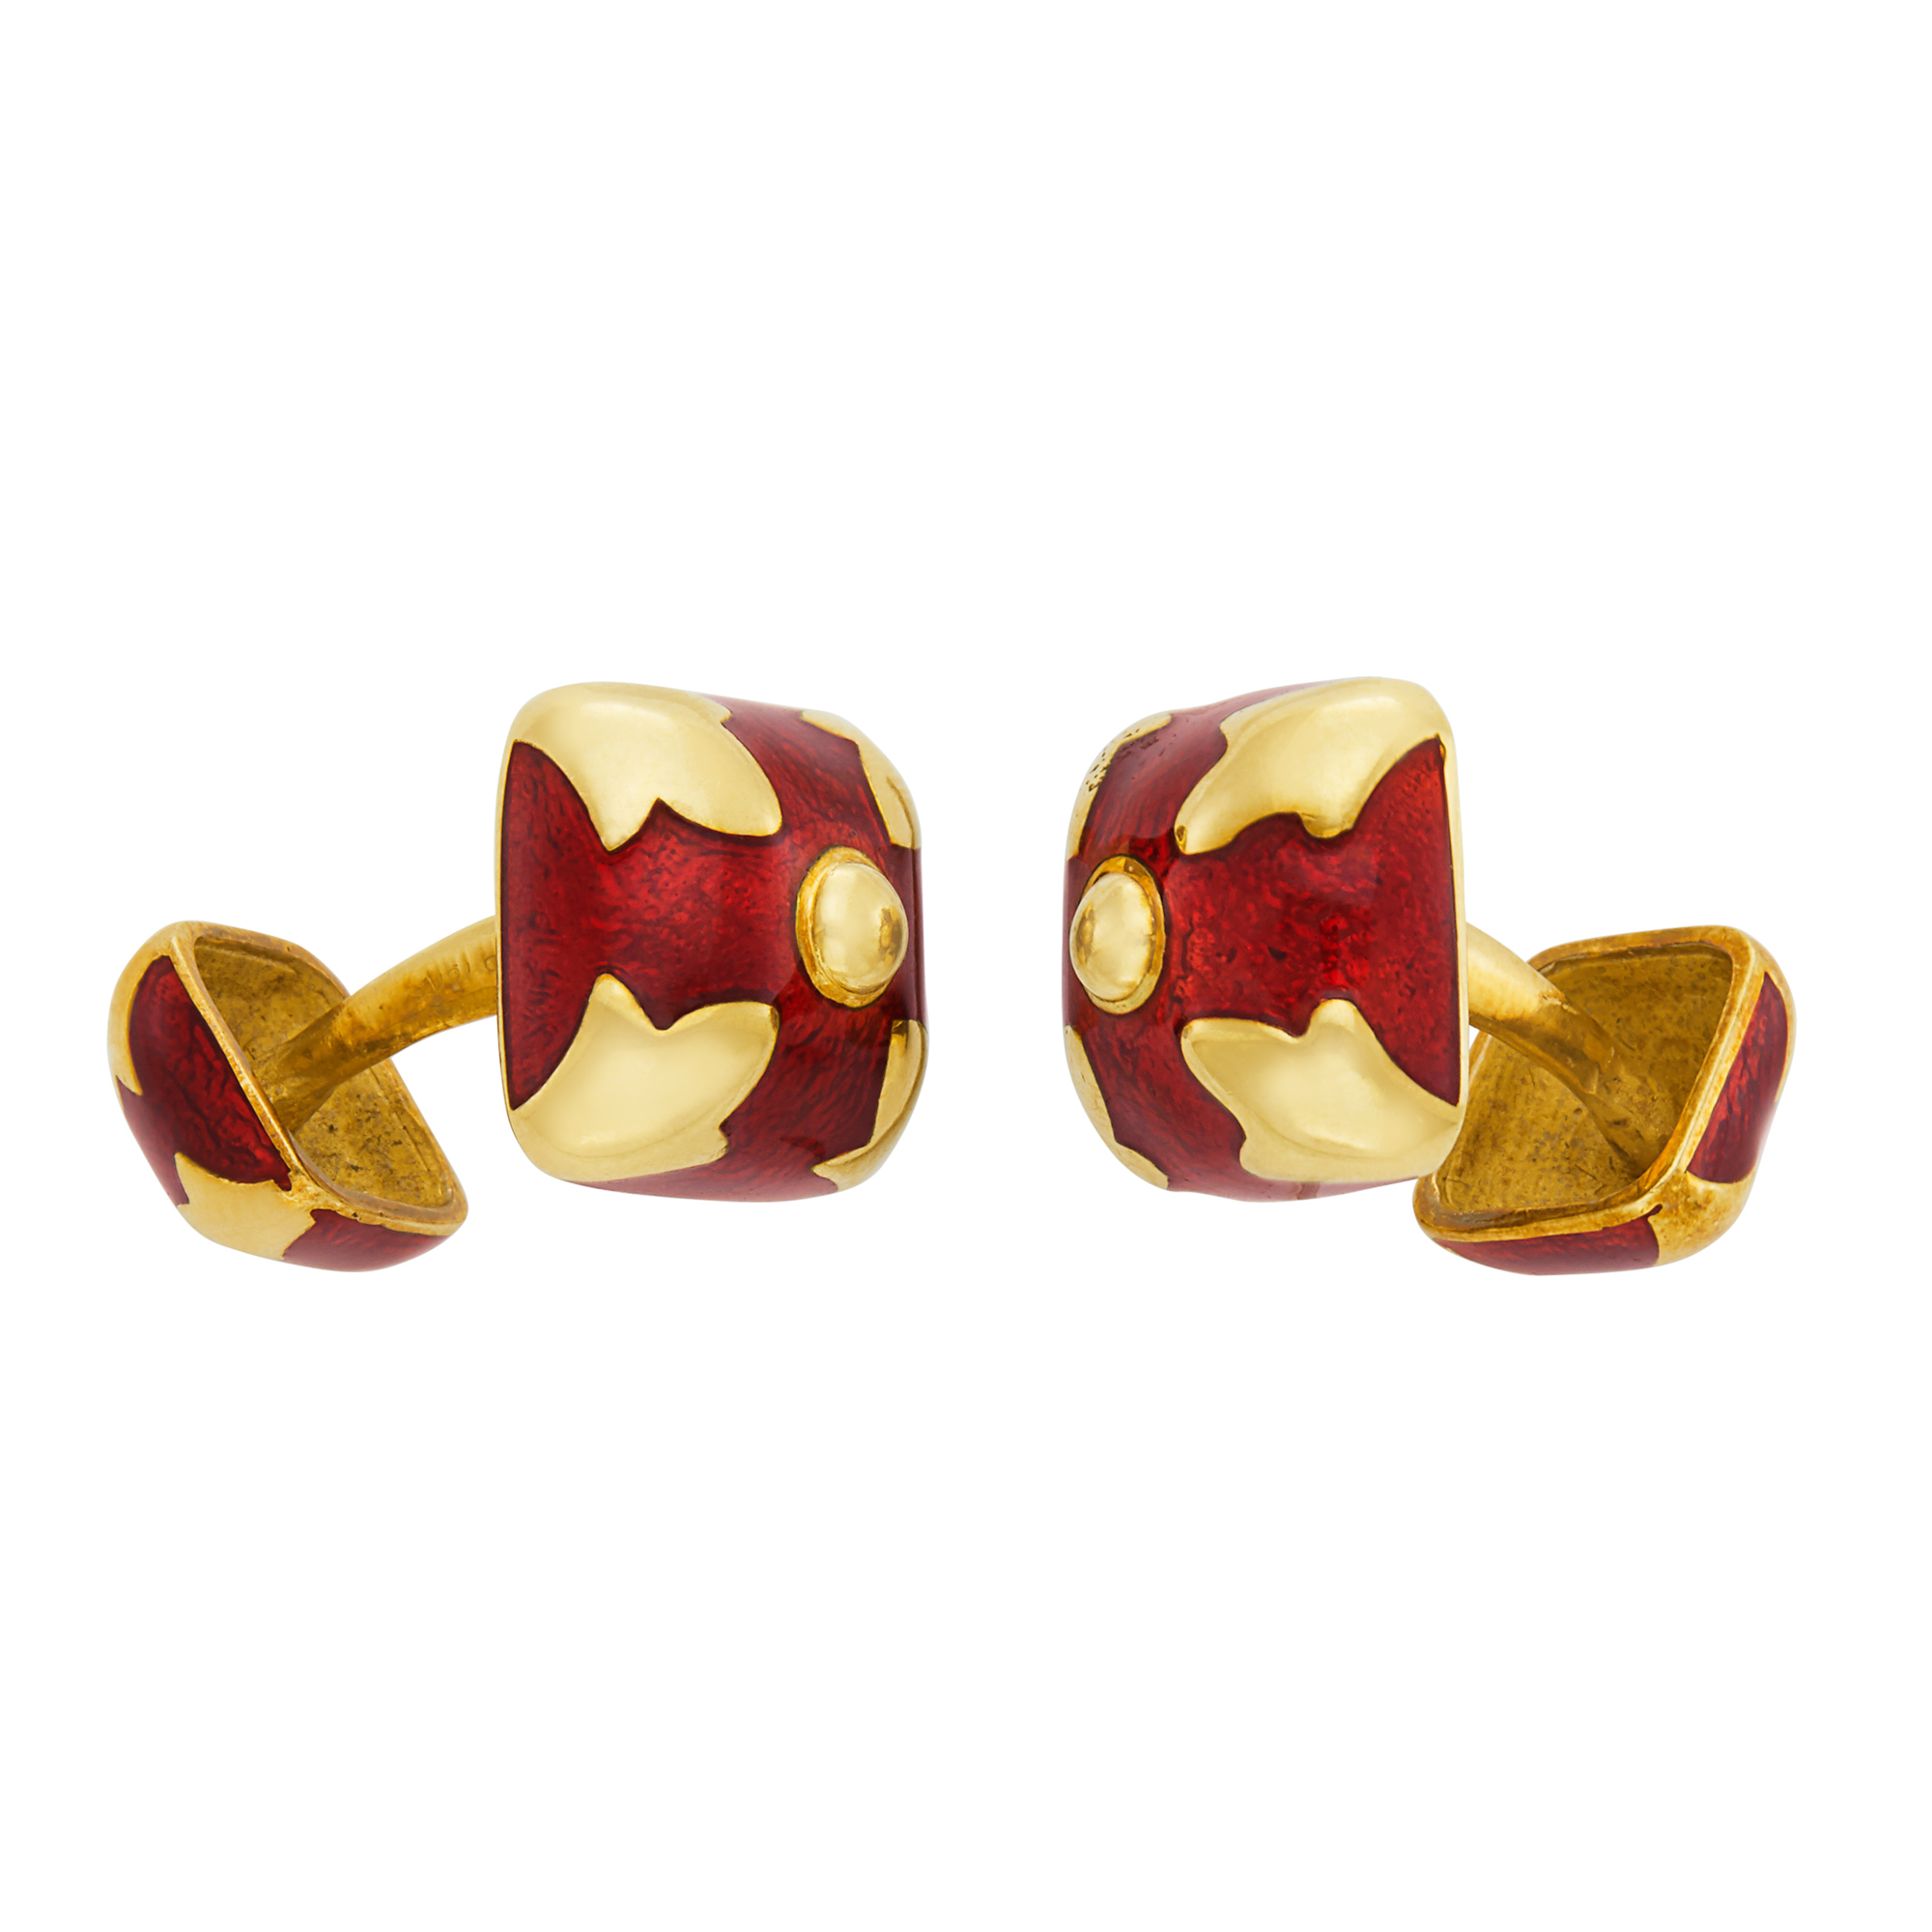 Lot image - Pair of Gold and Red Enamel Cufflinks, David Webb